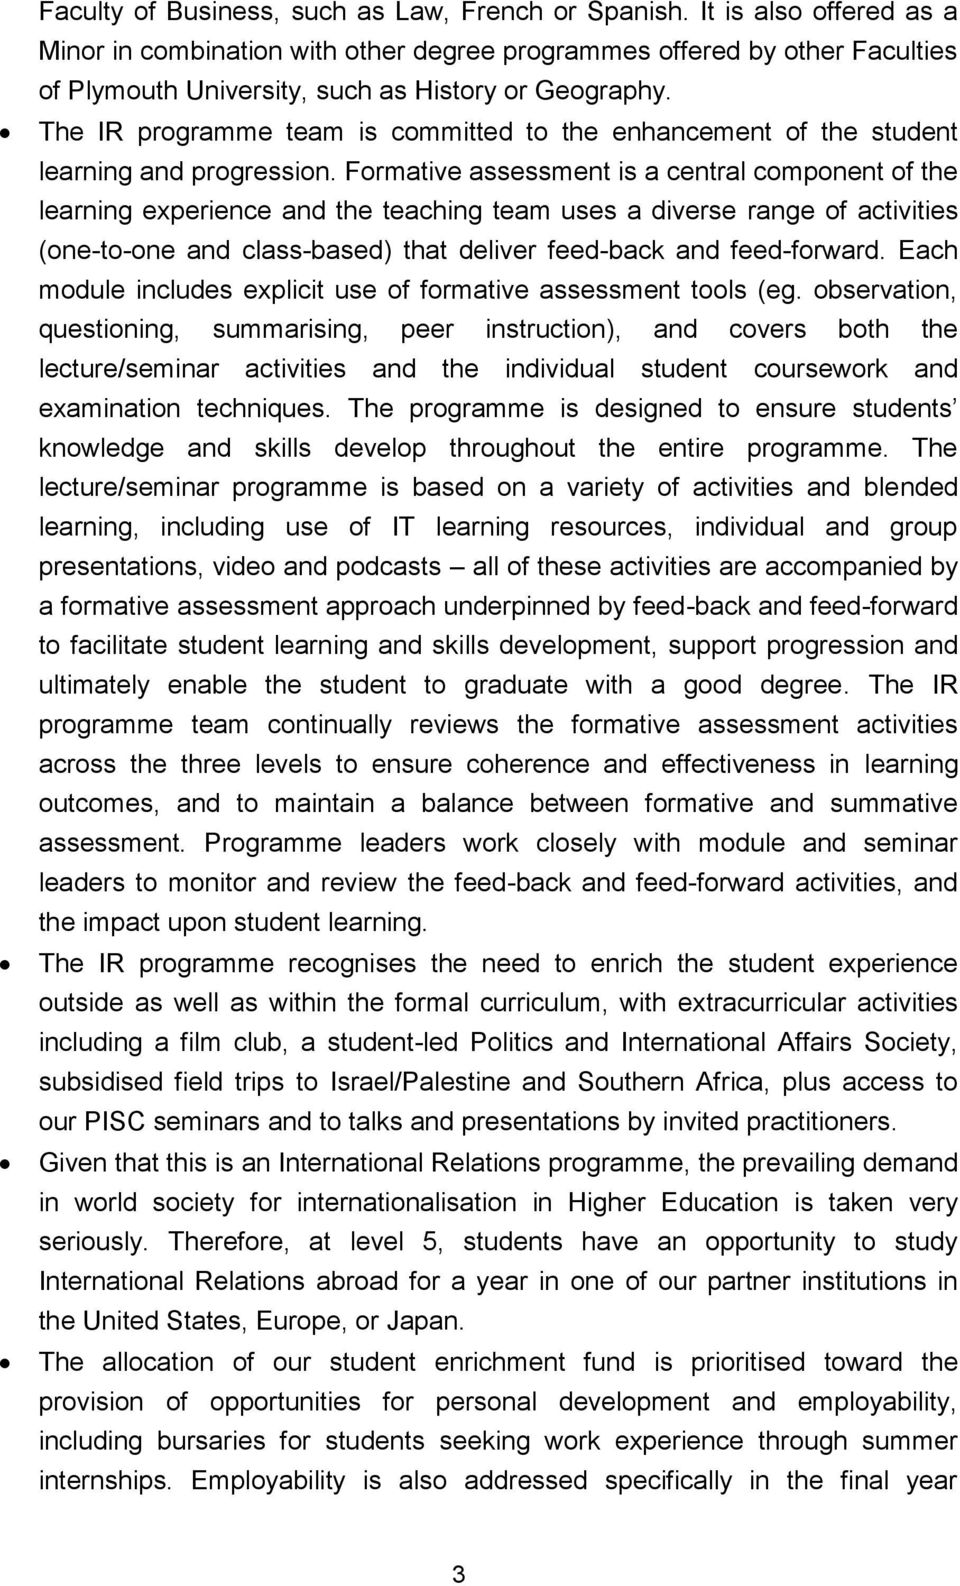 The IR programme team is committed to the enhancement of the student learning and progression.